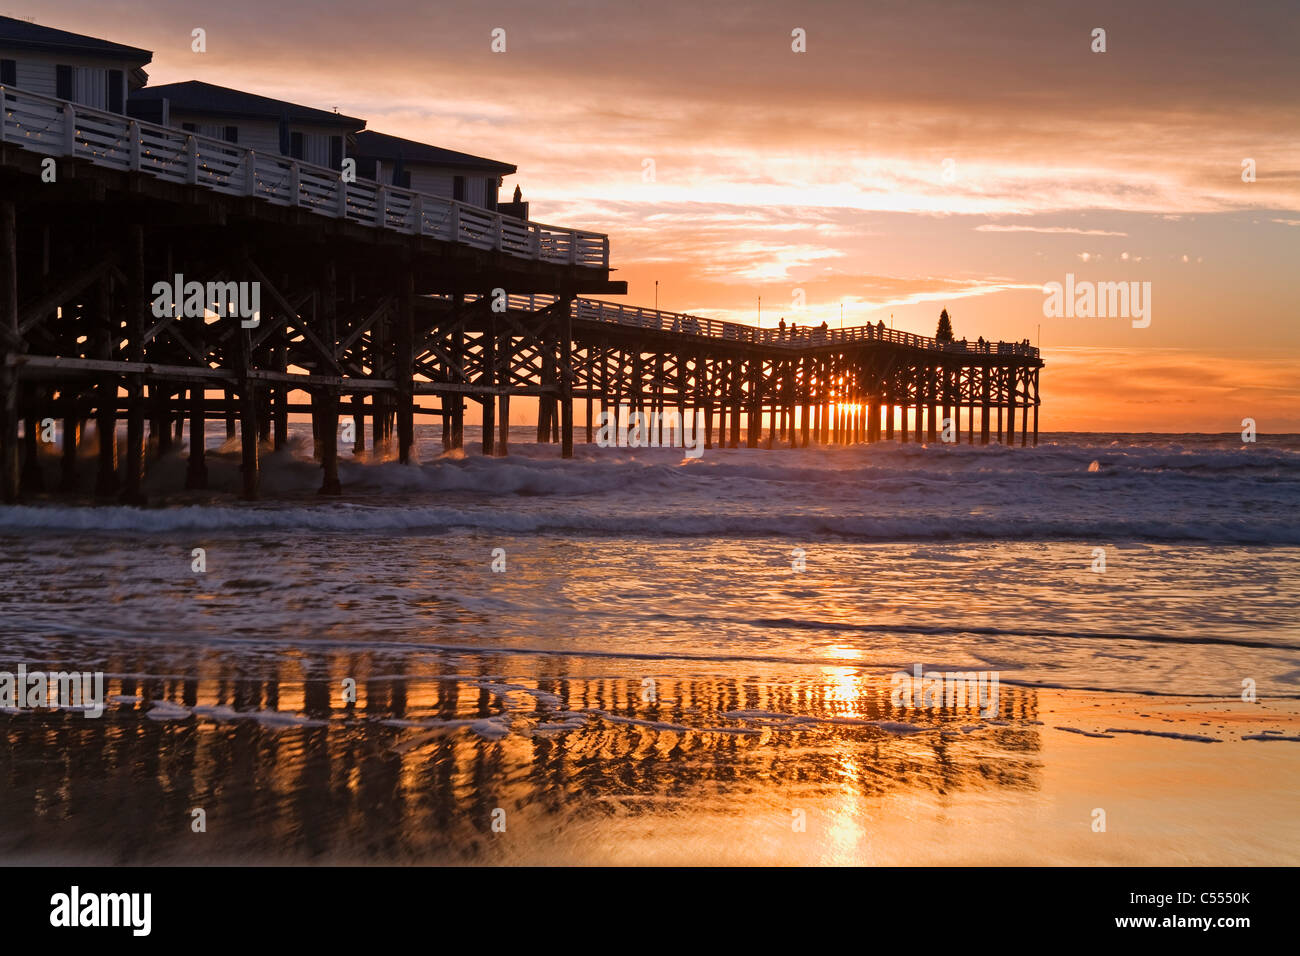 Hotel on the beach, Crystal Pier Hotel, Pacific Beach, San Diego, California, USA - Stock Image